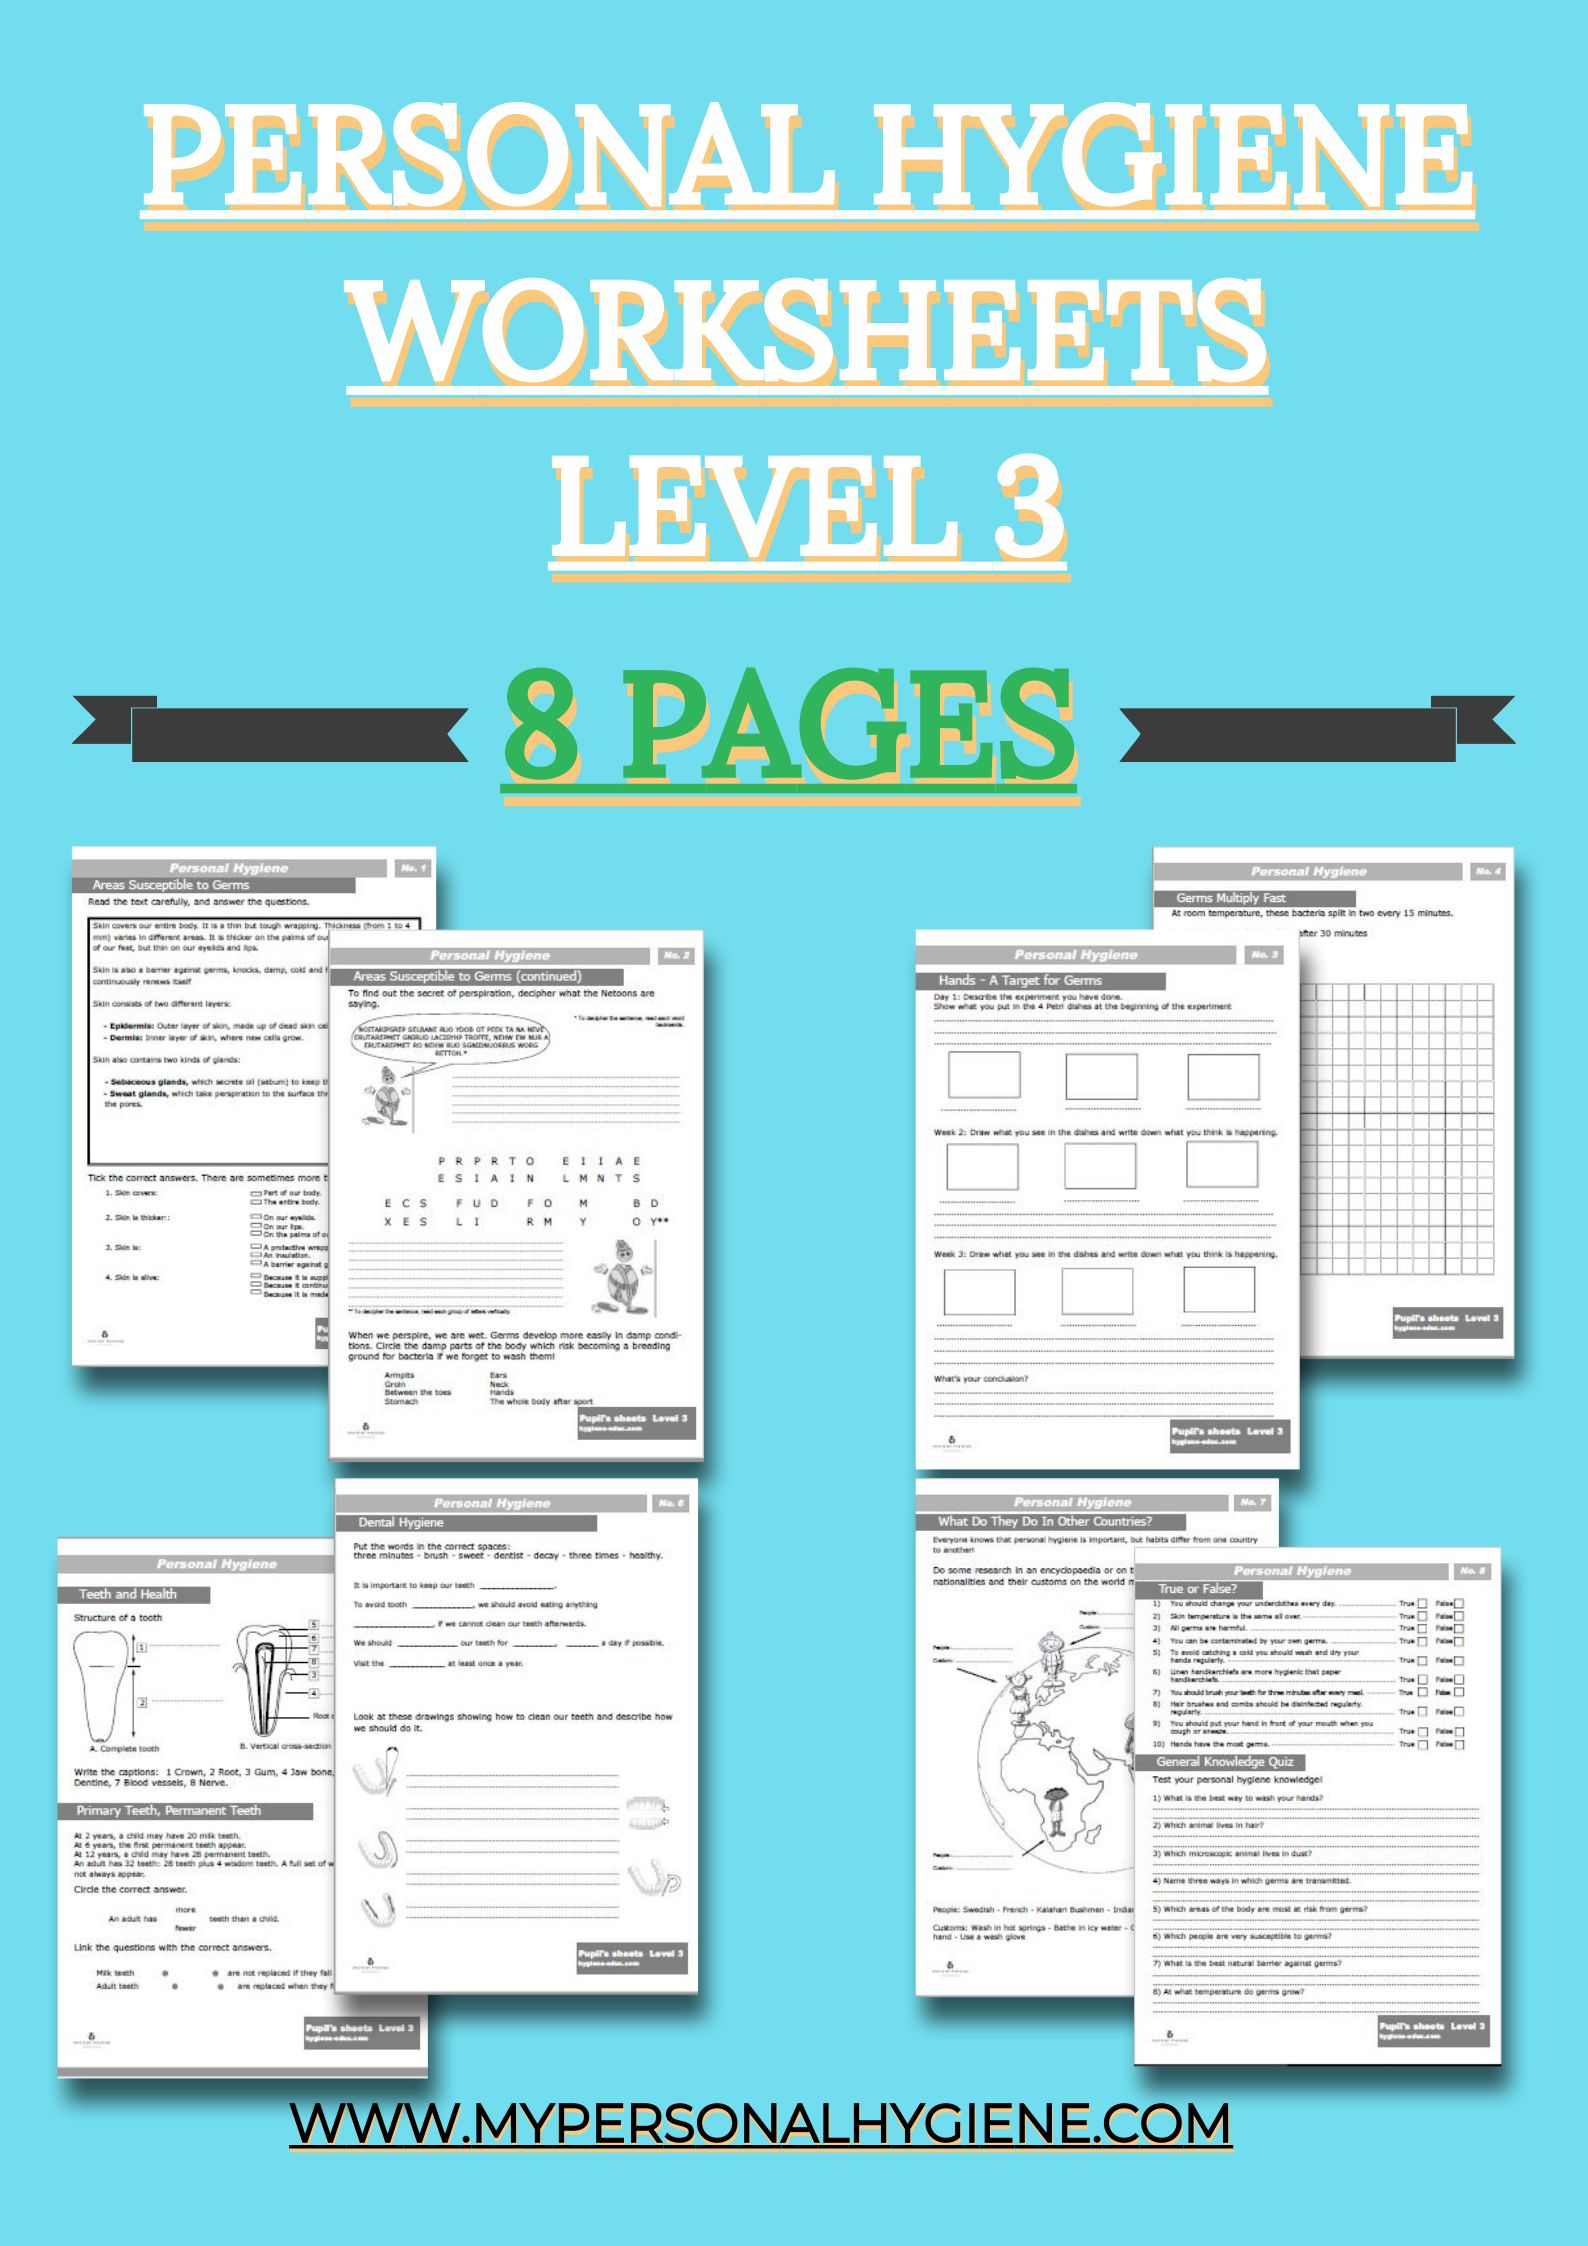 Level 3 Of Personal Hygiene Worksheets For Kids Included